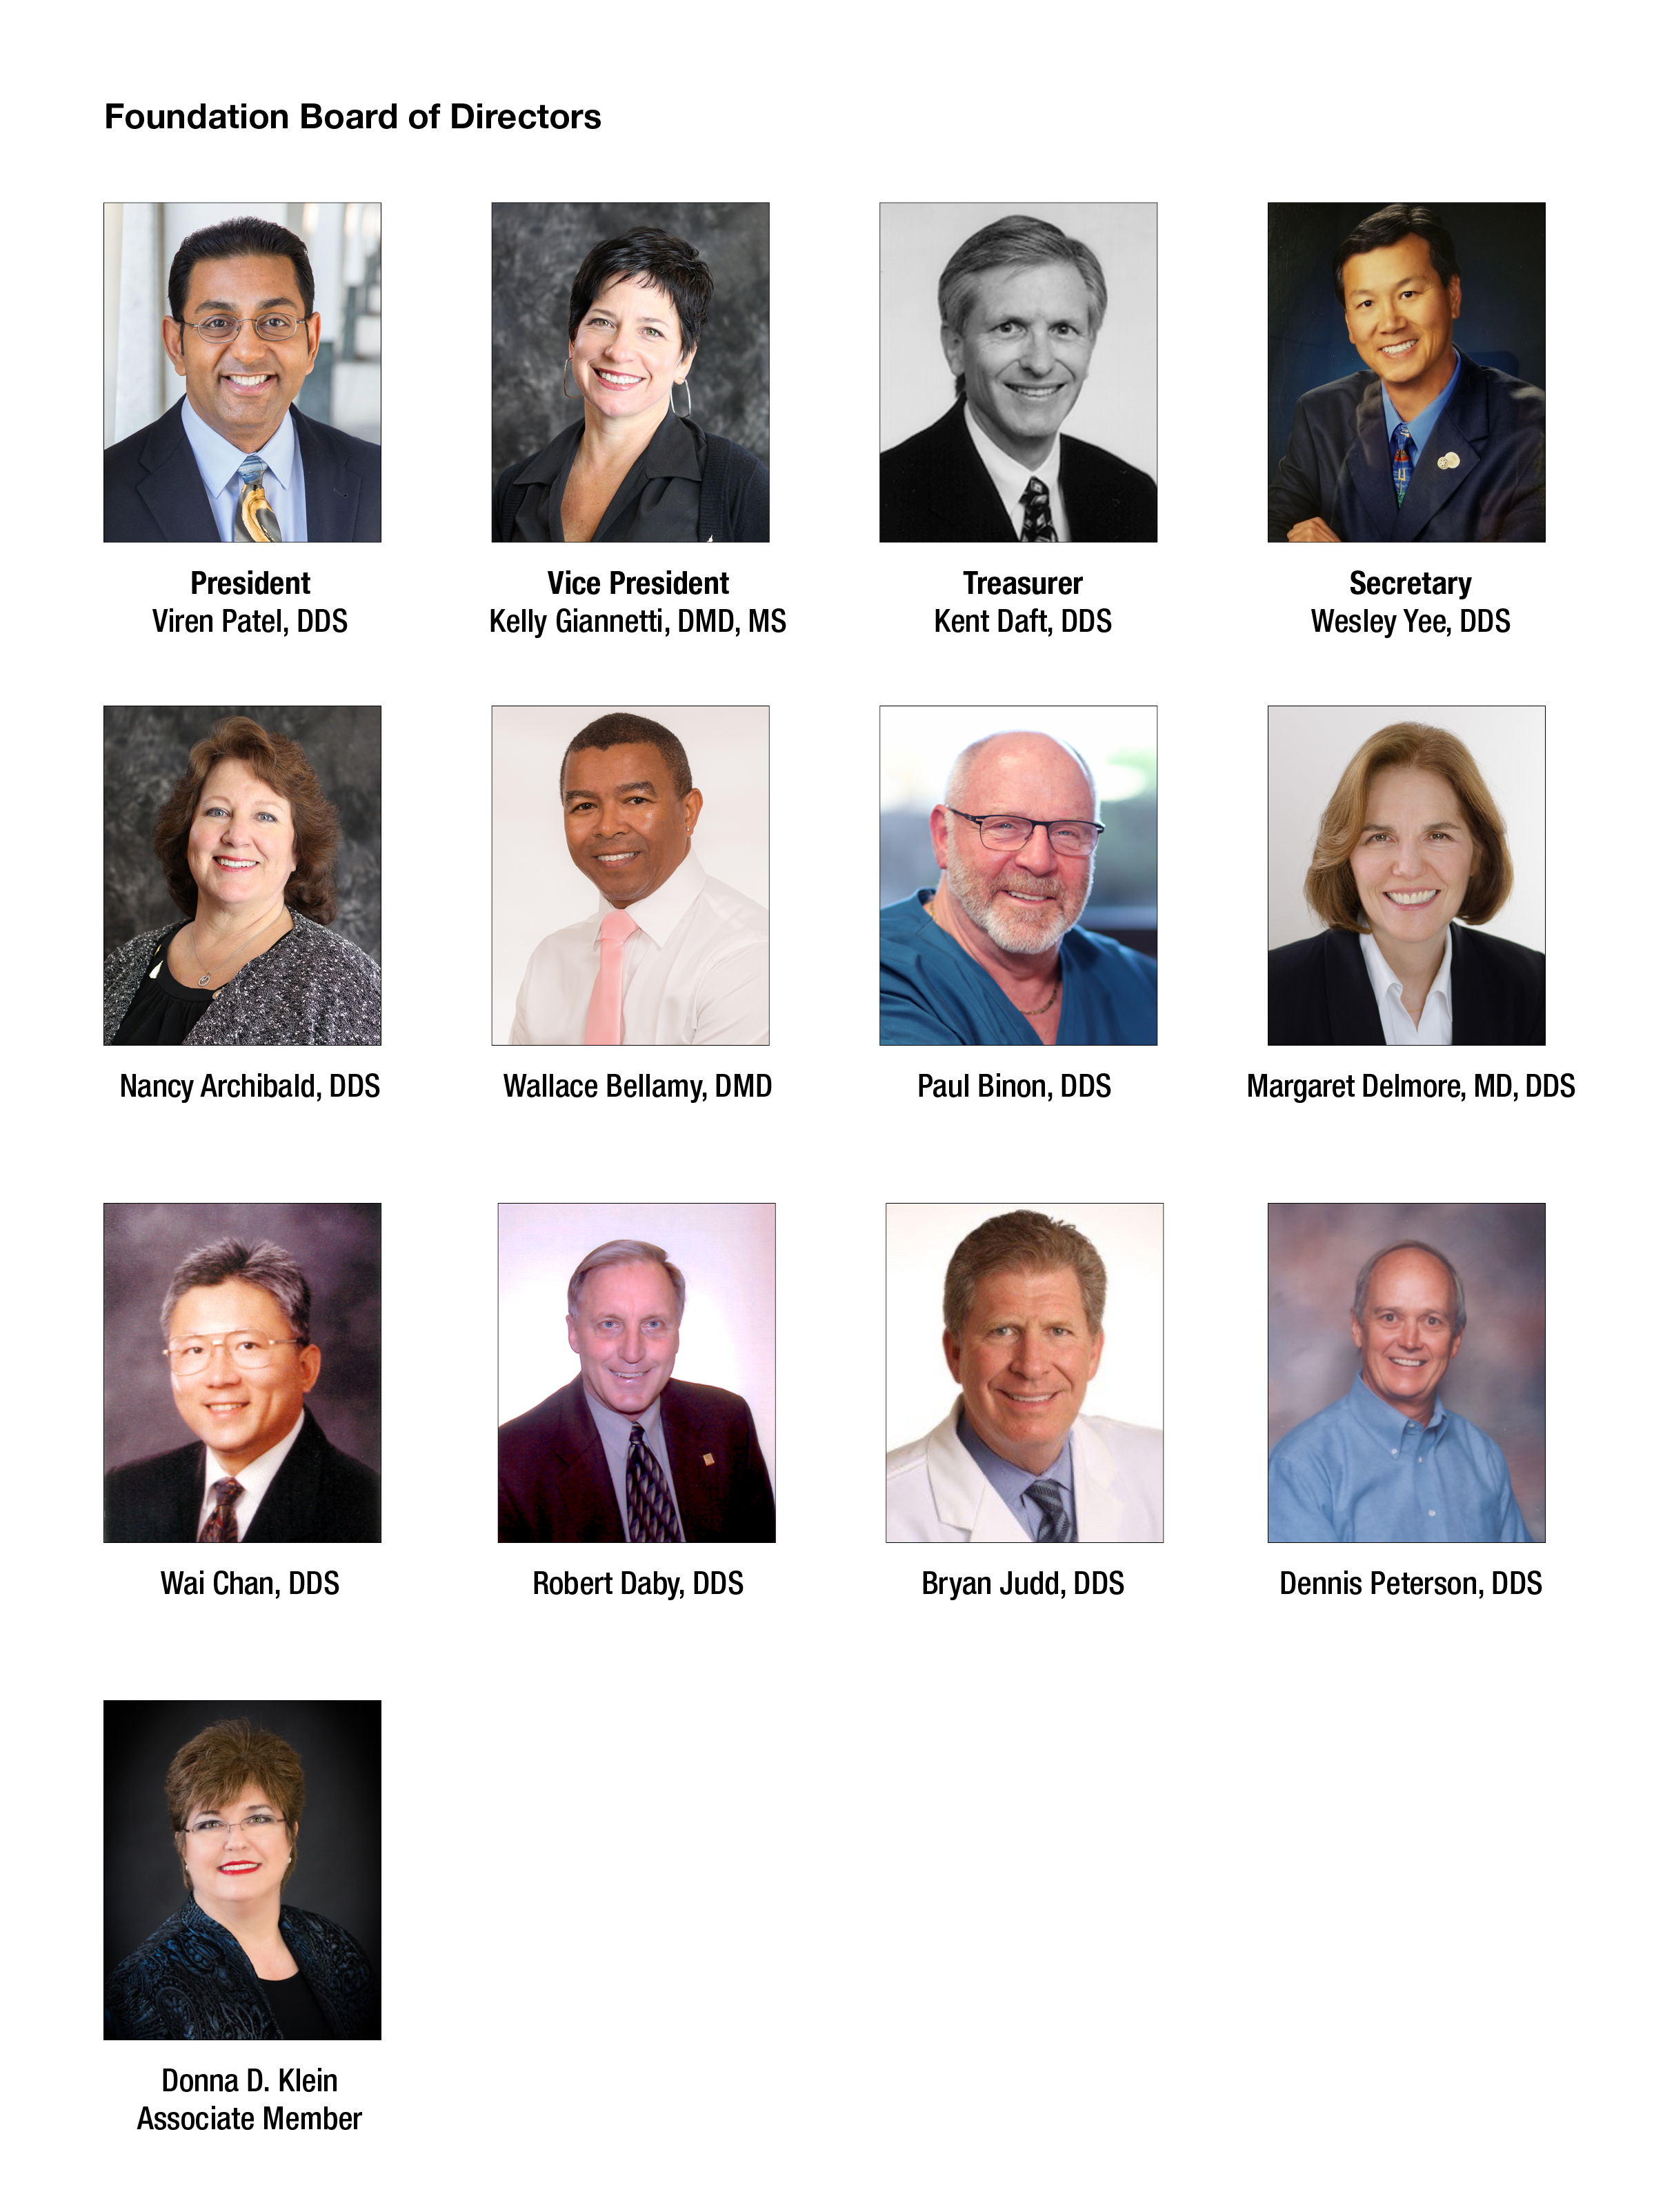 pictures of board members